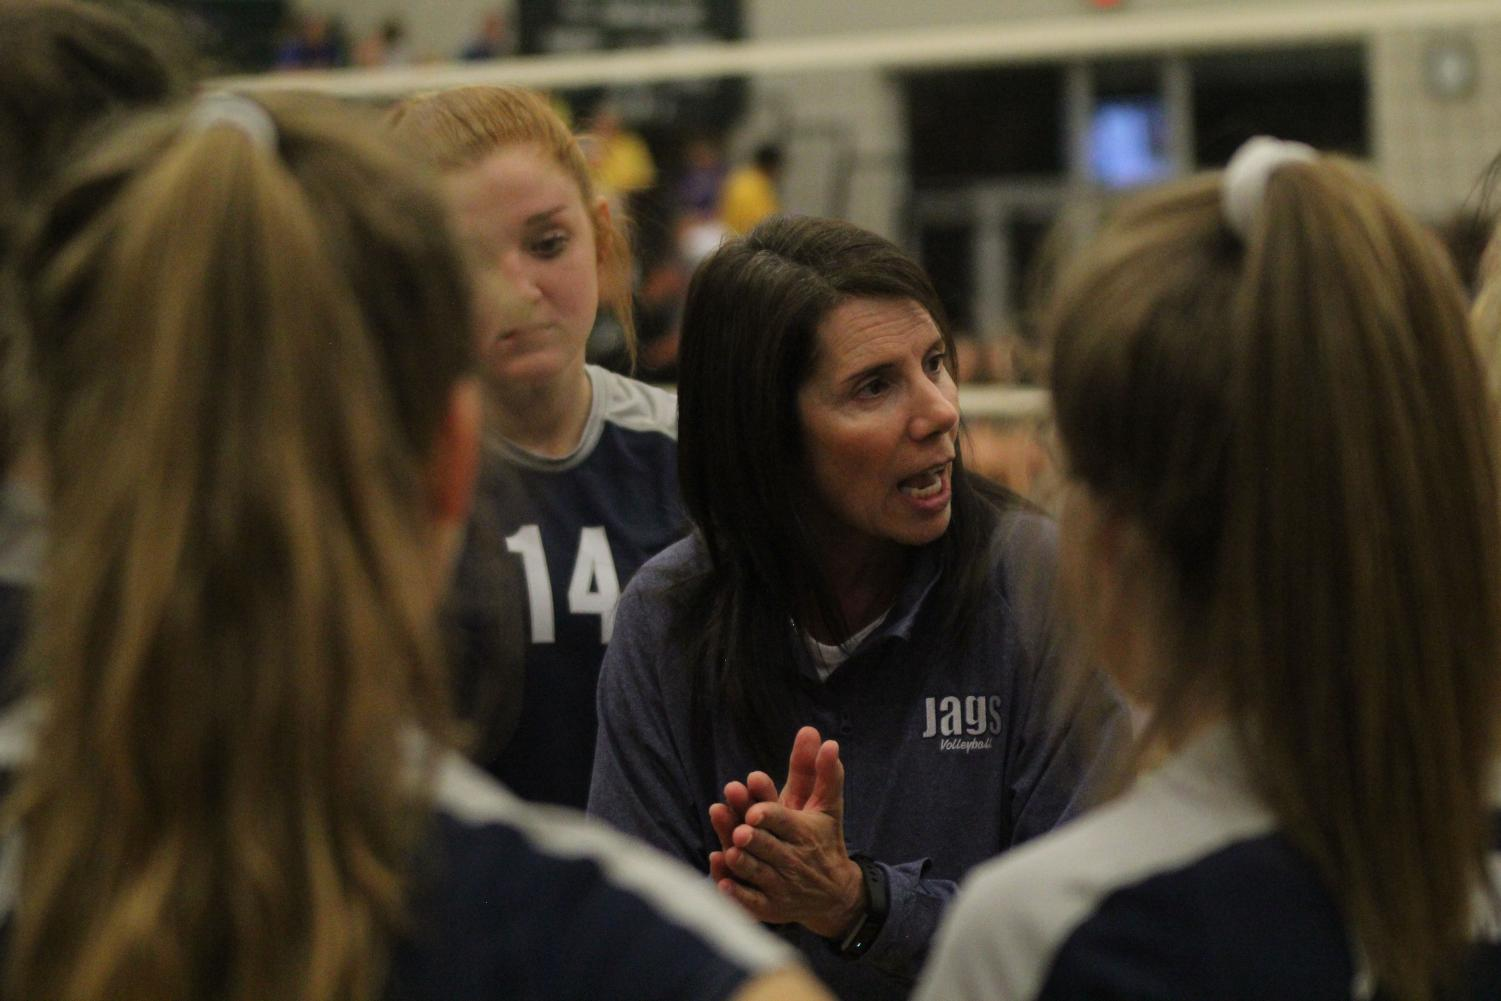 In+between+set+two+and+three%2C+head+coach+Debbie+Fay+talks+with+the+players+in+a+huddle.%0A